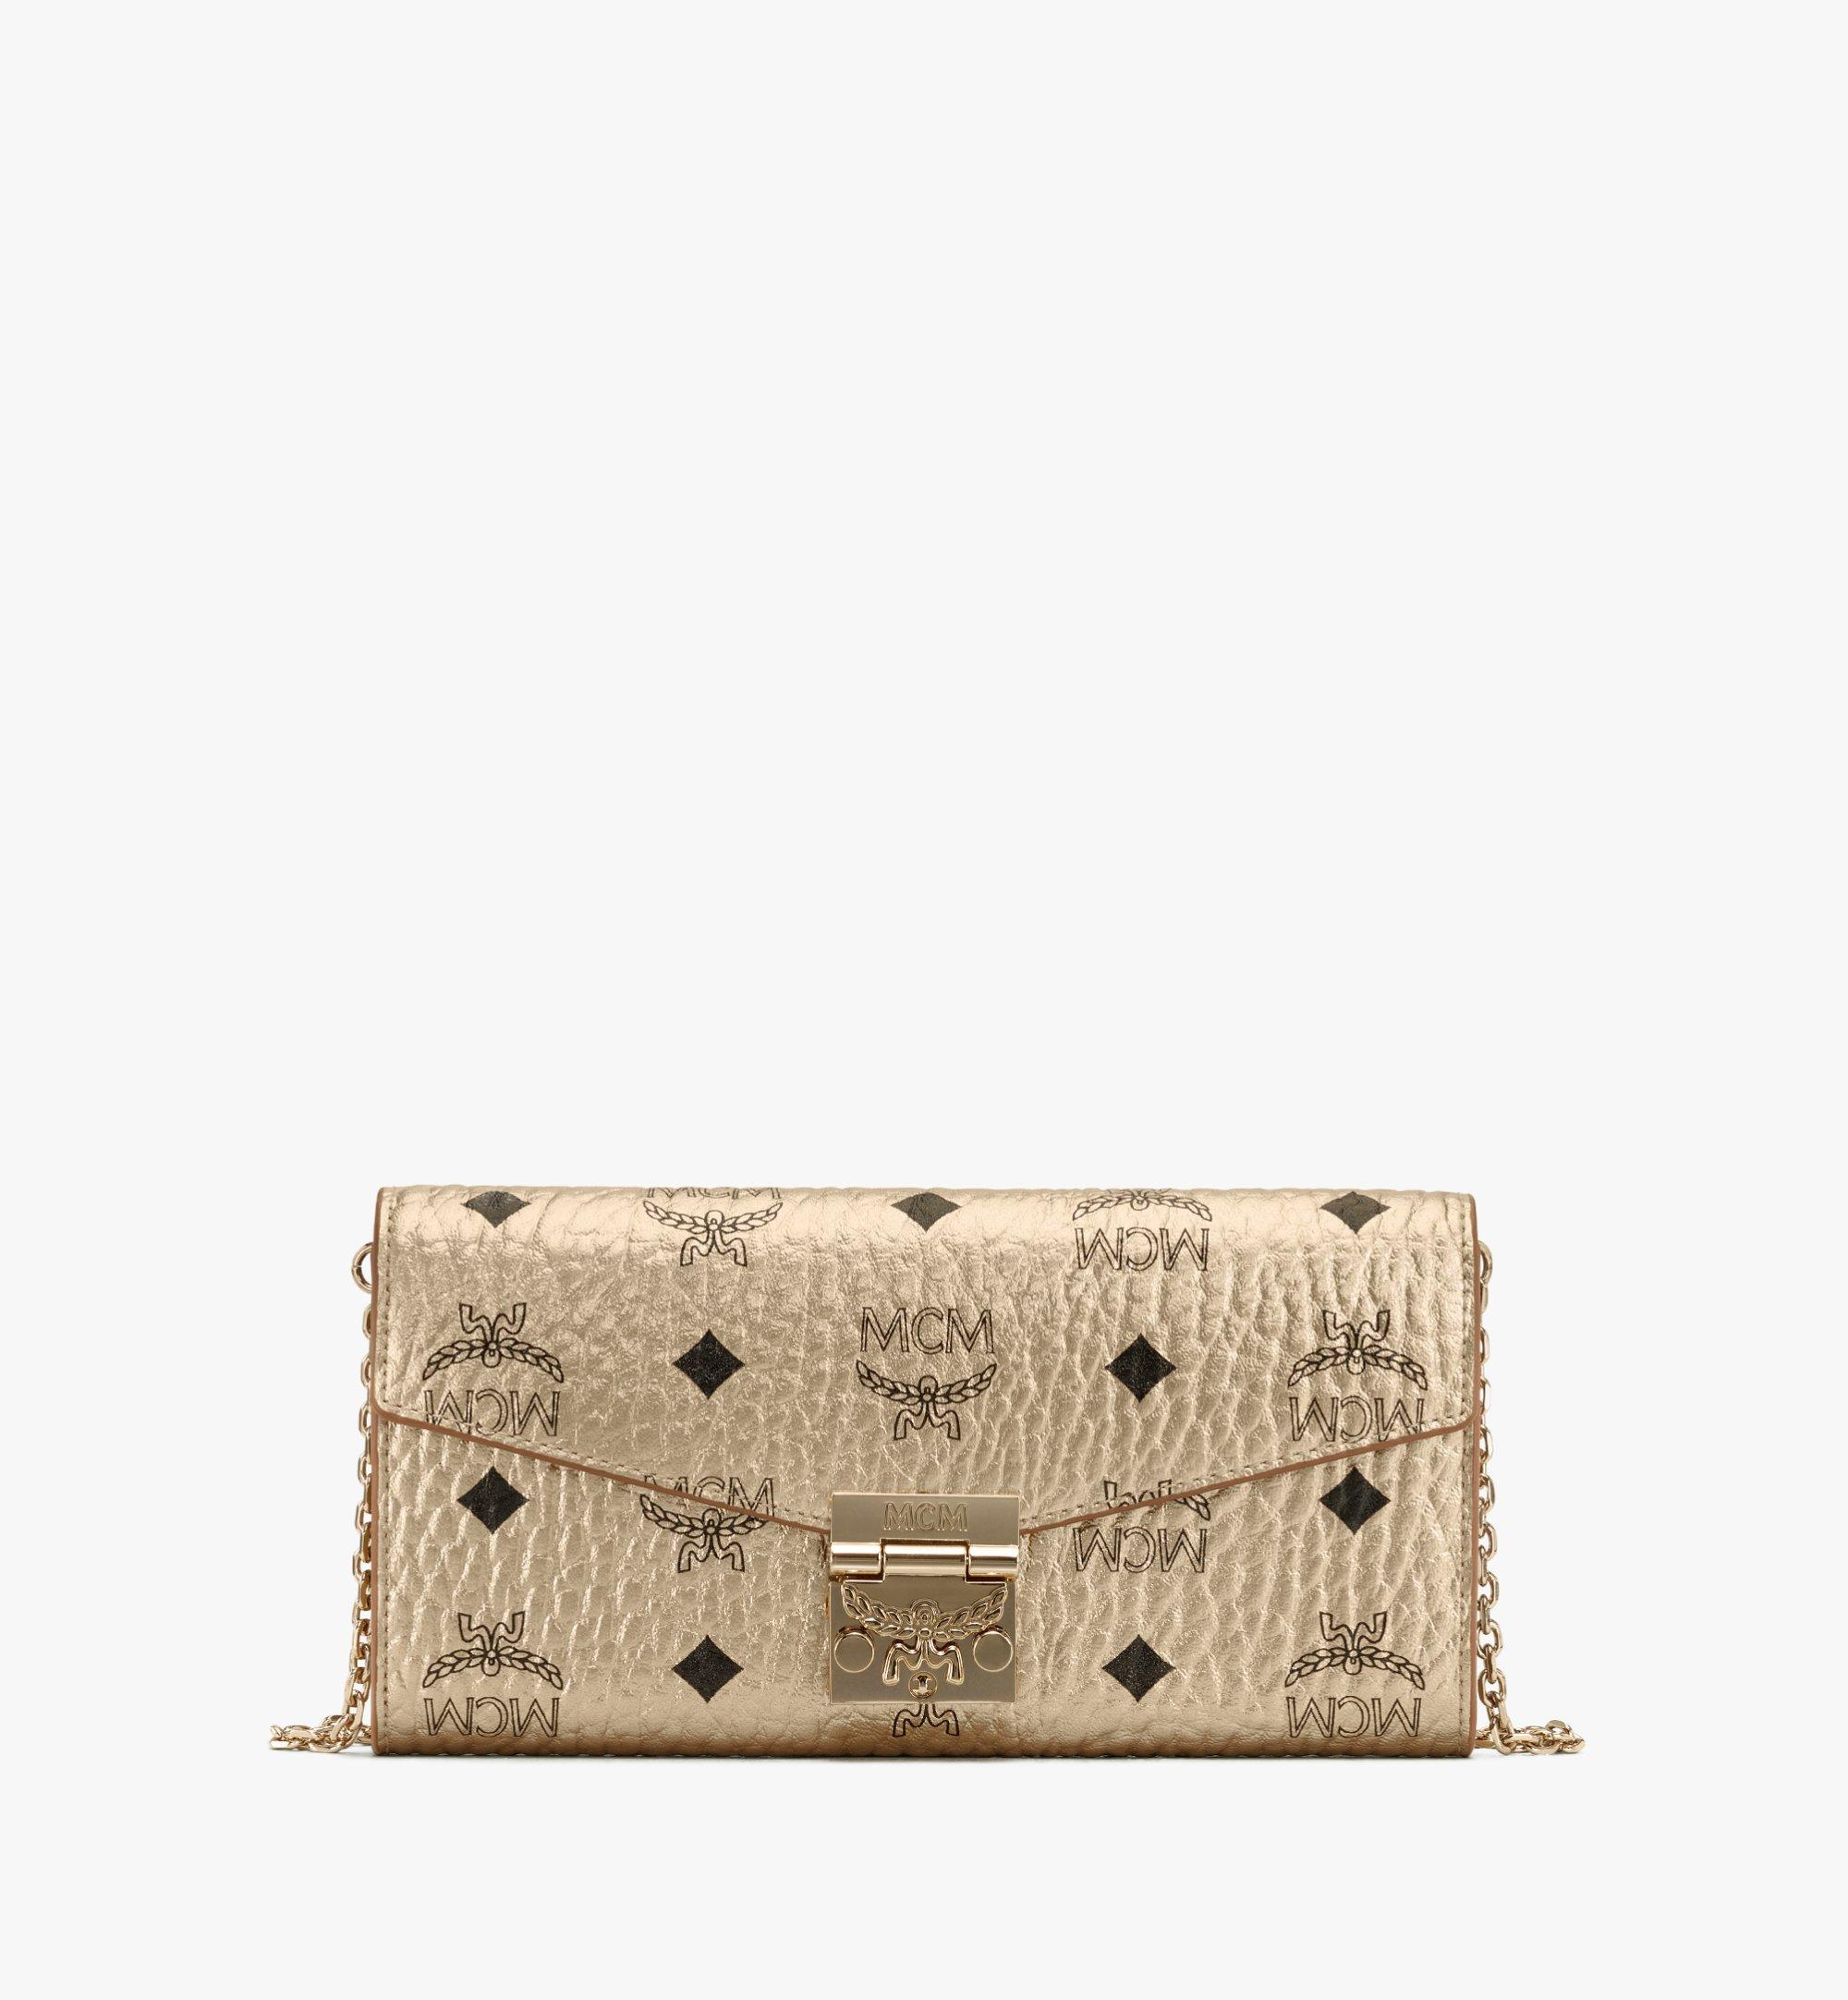 Patricia Crossbody Brieftasche in Visetos